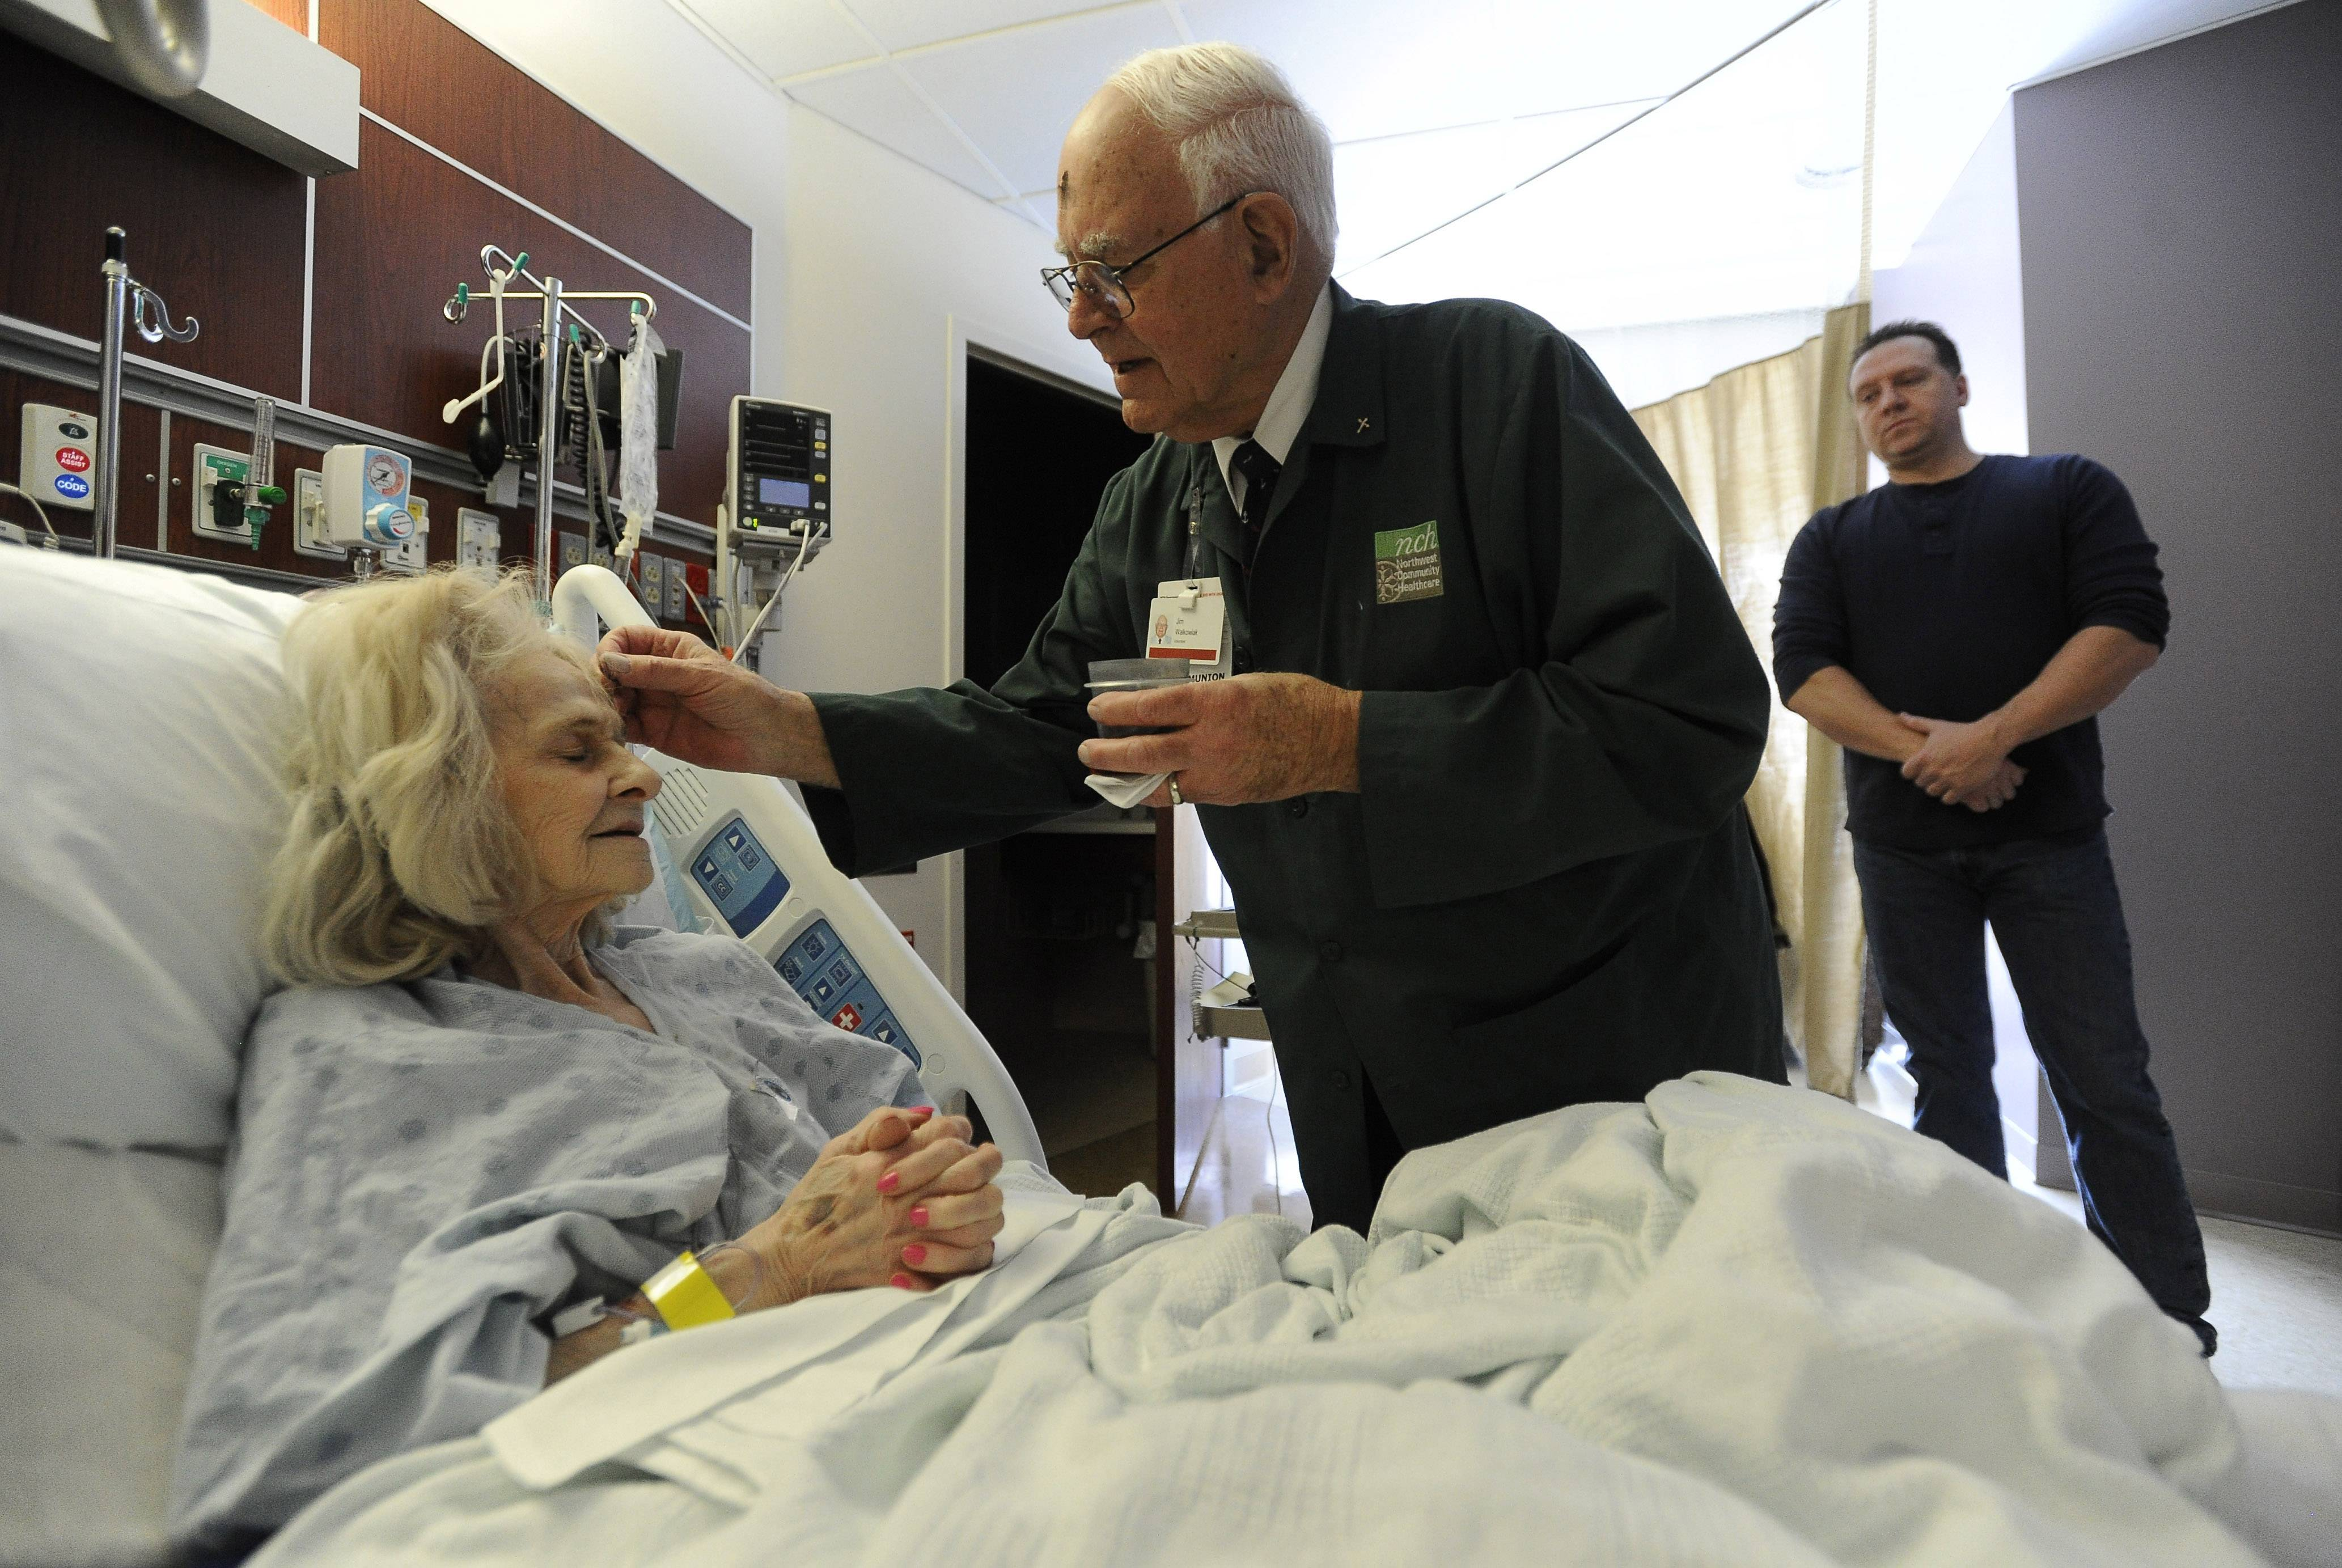 Josephine Bies, a resident of St. Patrick's Residence Nursing and Rehabilitation Center in Naperville, received her ashes during a morning church service.